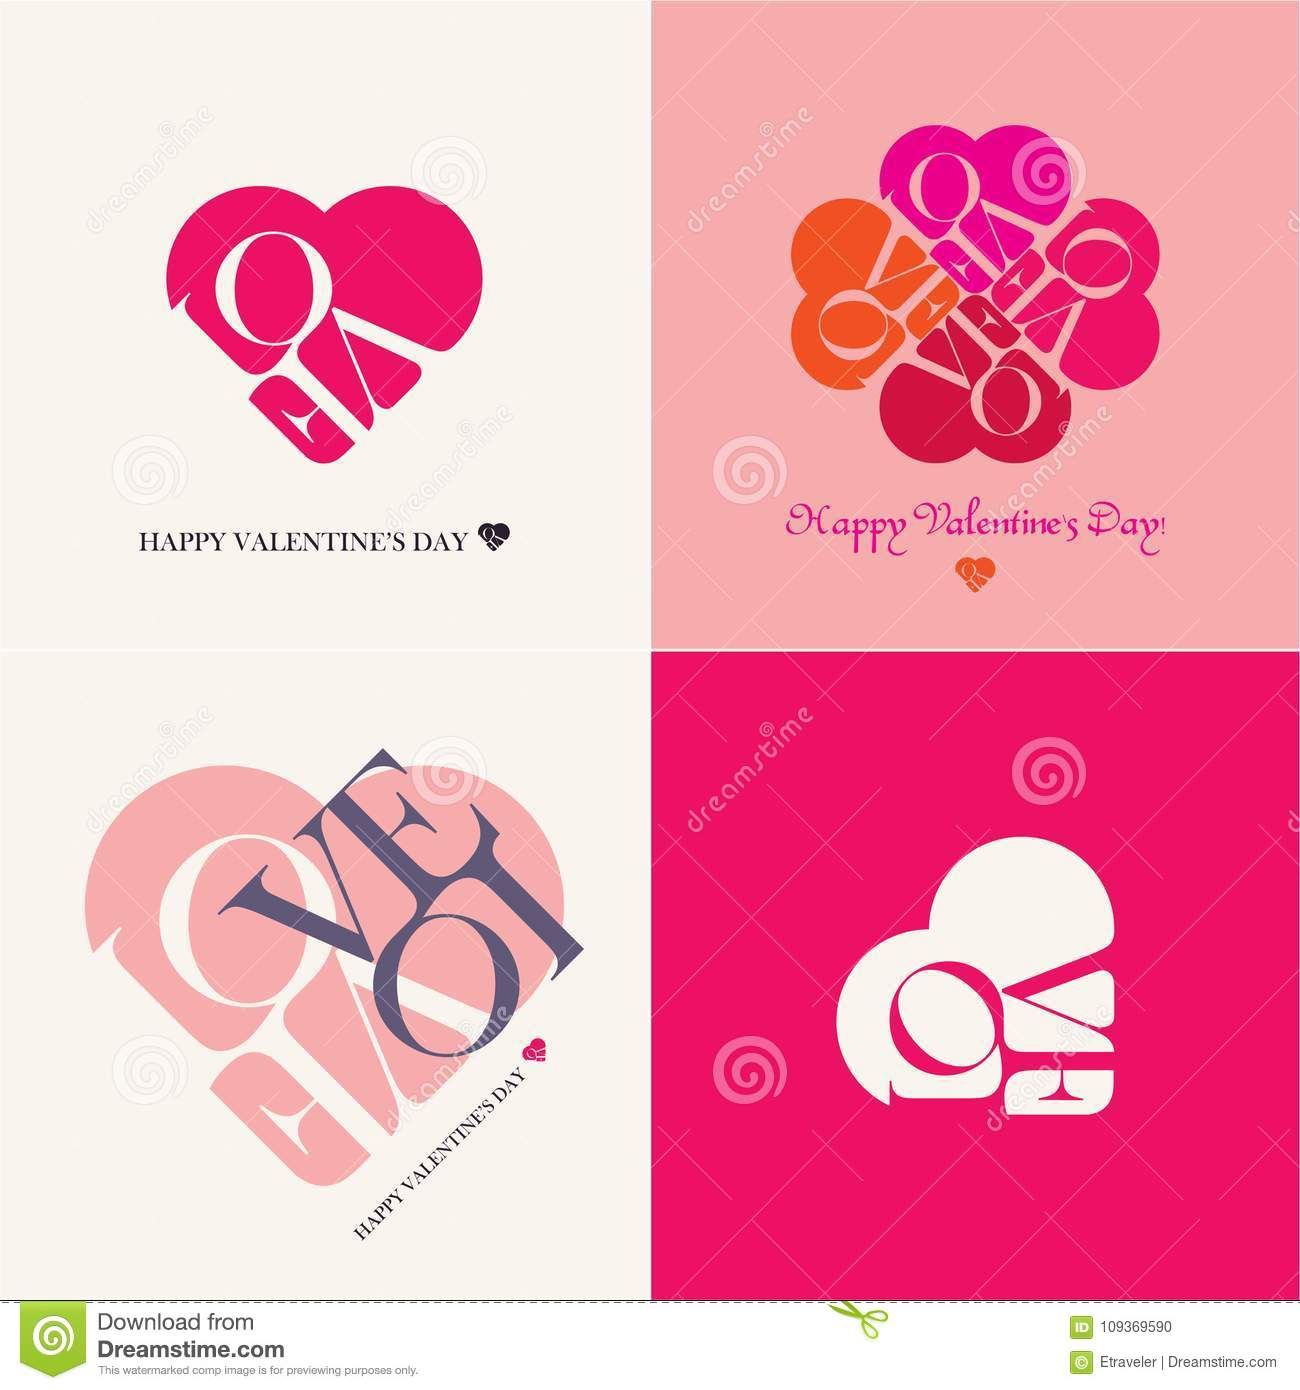 Love Heart Happy Valentines Day Cards Valentine Day Love Beautiful